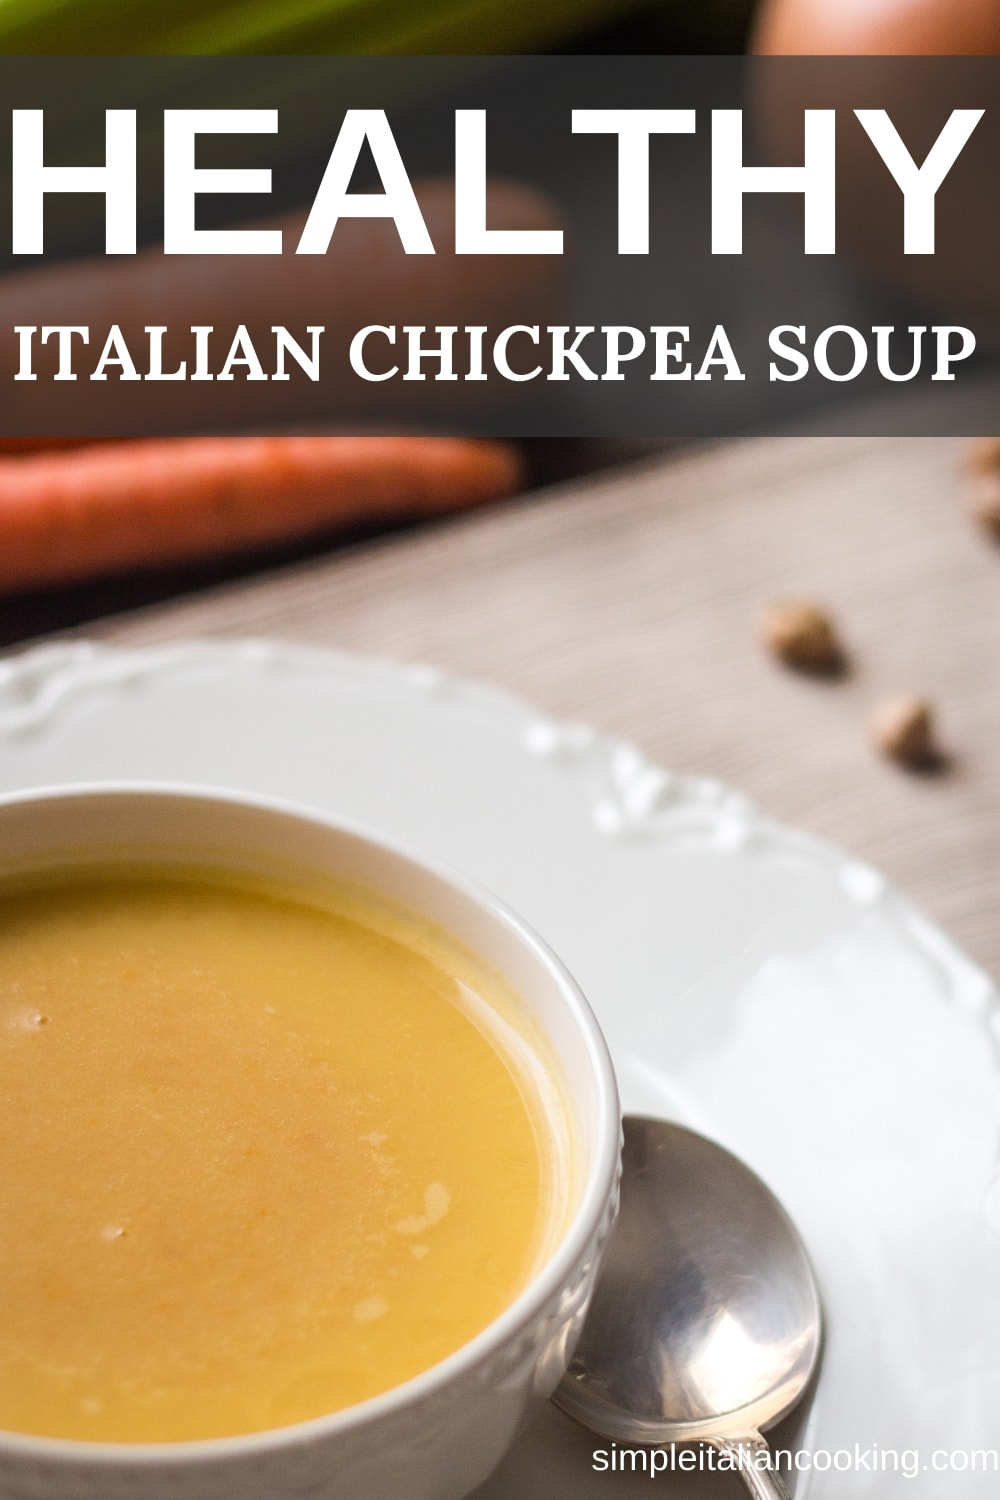 How to Make Blended Chickpea Soup Italian Style